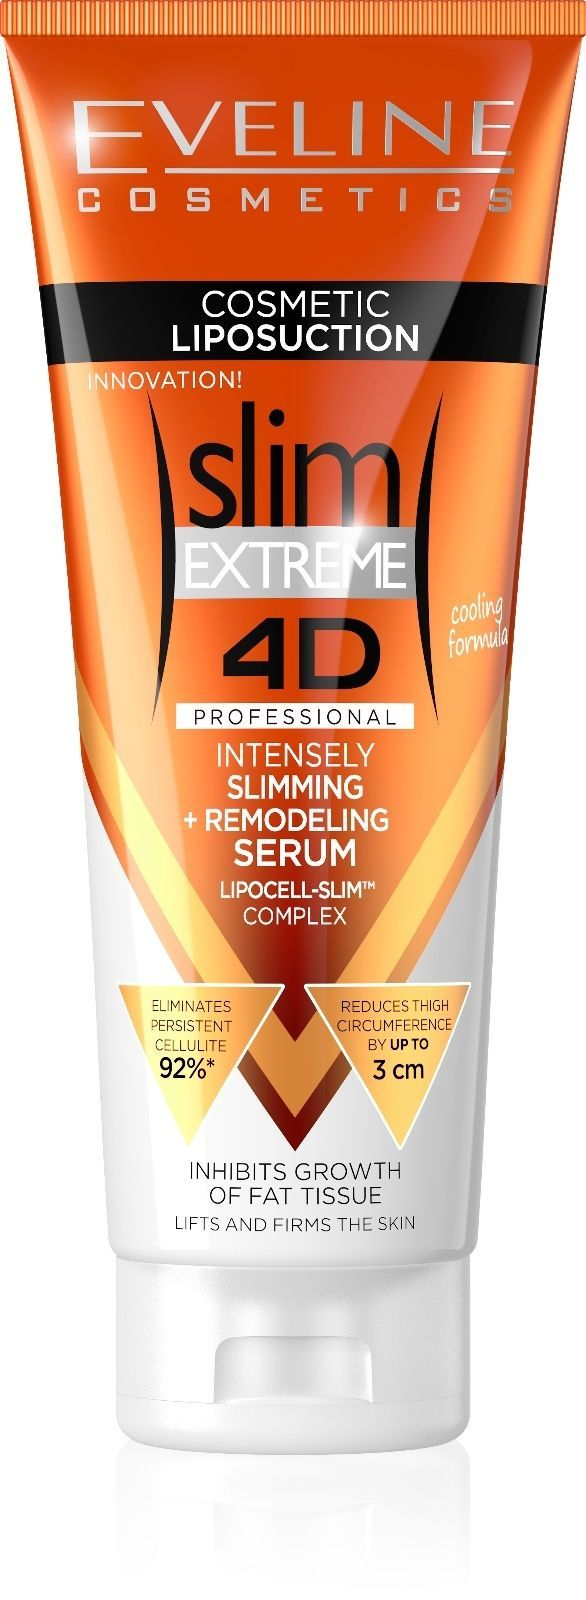 Eveline Cosmetics Slim Extreme 4D Cosmetic Liposuction Professional Cream